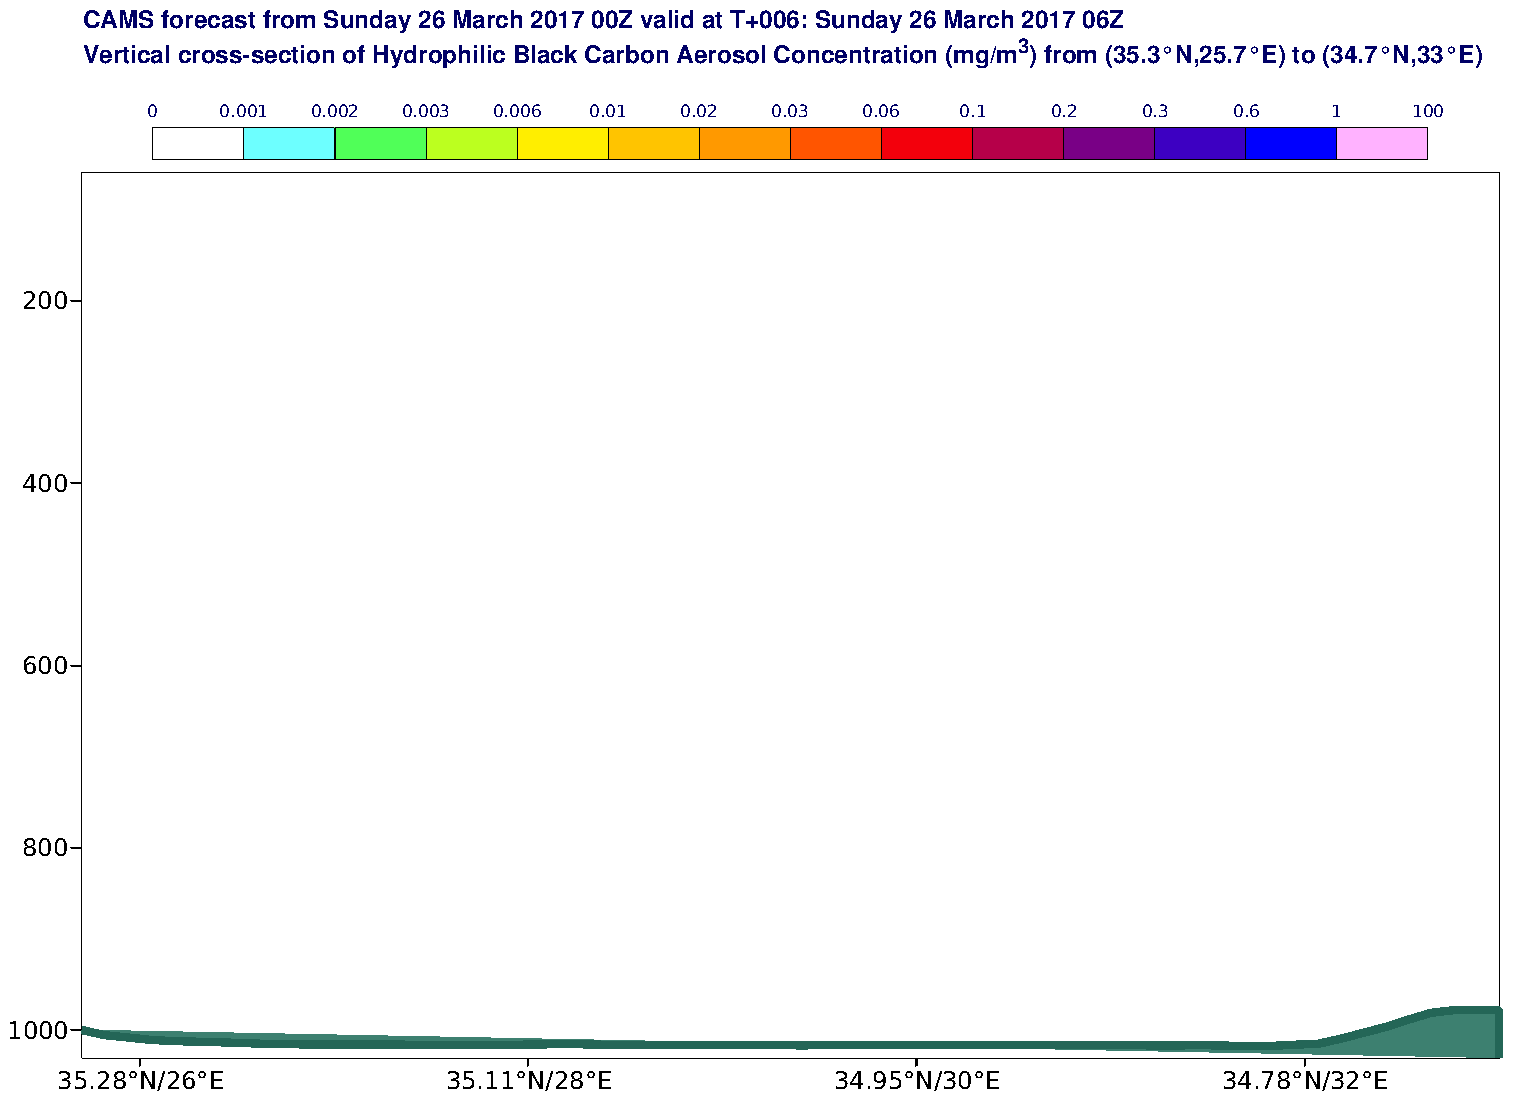 Vertical cross-section of Hydrophilic Black Carbon Aerosol Concentration (mg/m3) valid at T6 - 2017-03-26 06:00